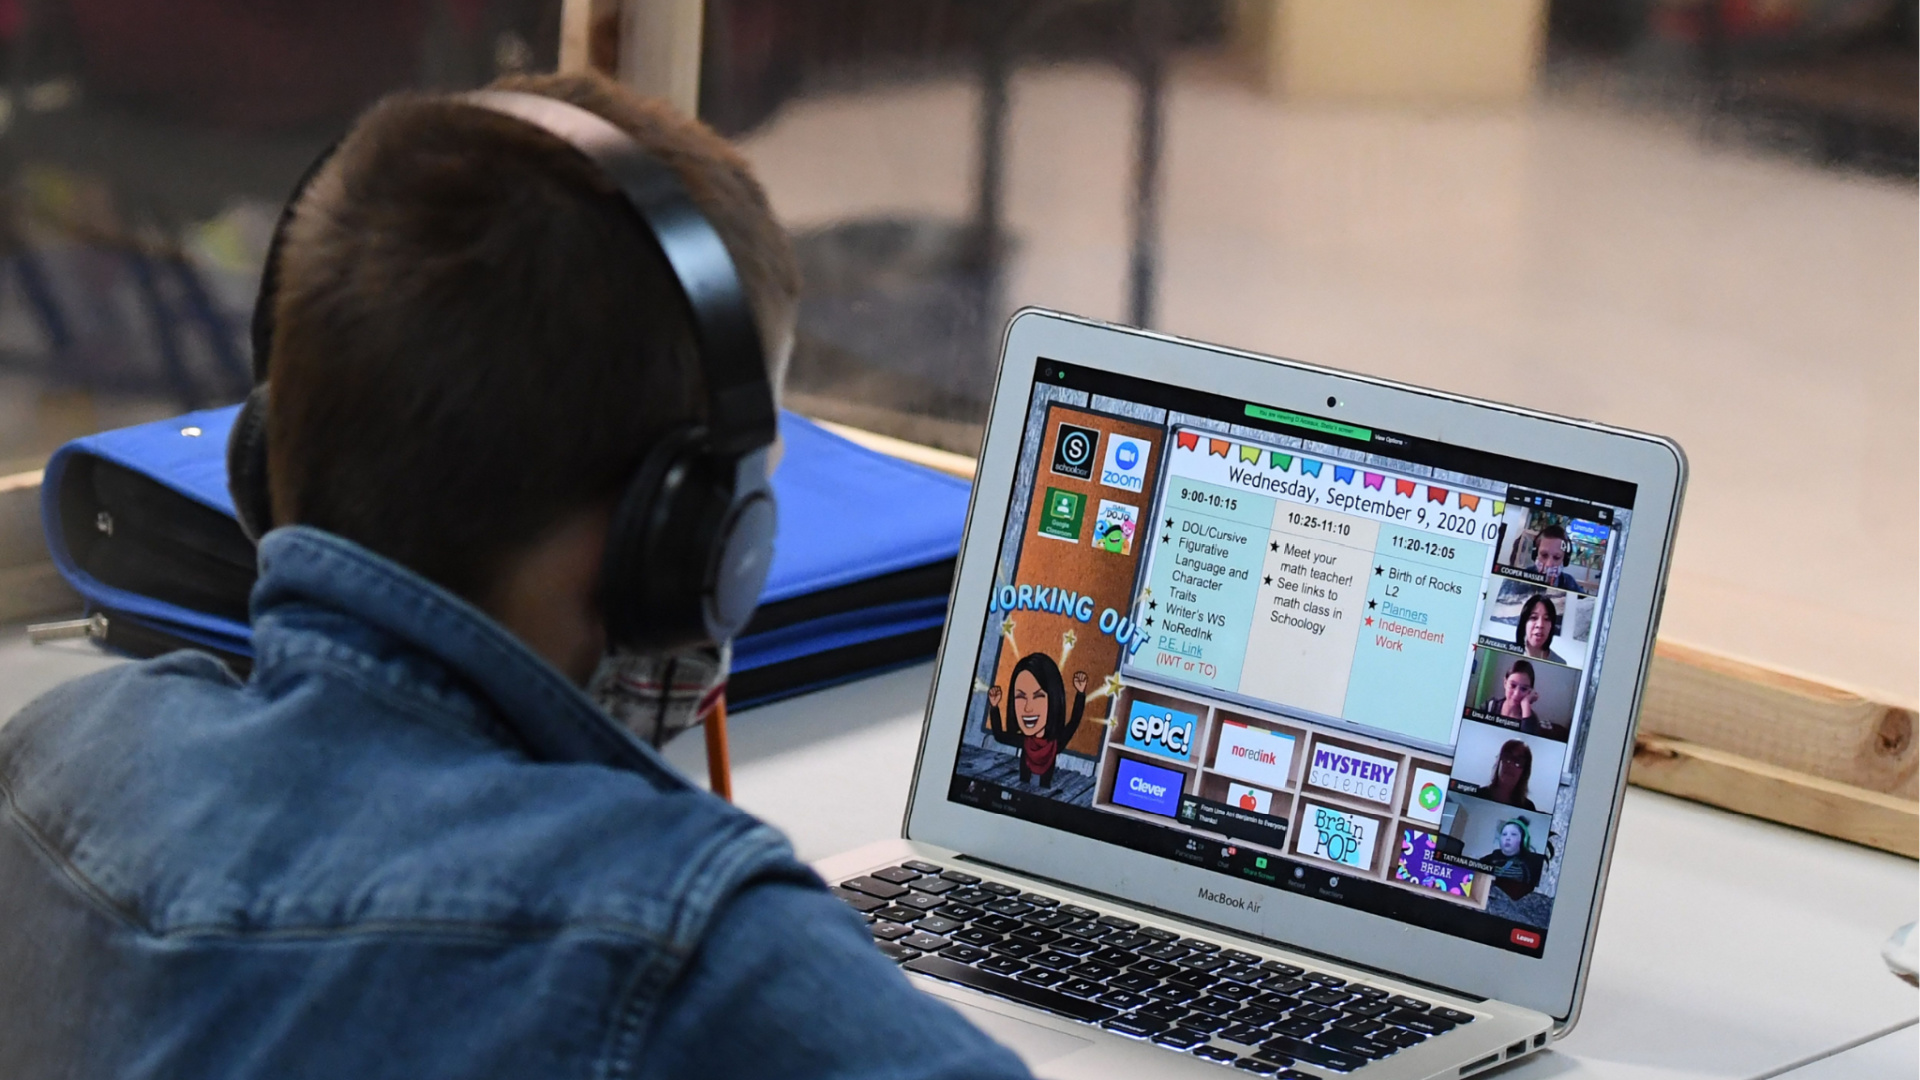 A students follows along remotely with his school teacher's online live lesson on Sept. 10, 2020 in Culver City, California. (ROBYN BECK/AFP via Getty Images)